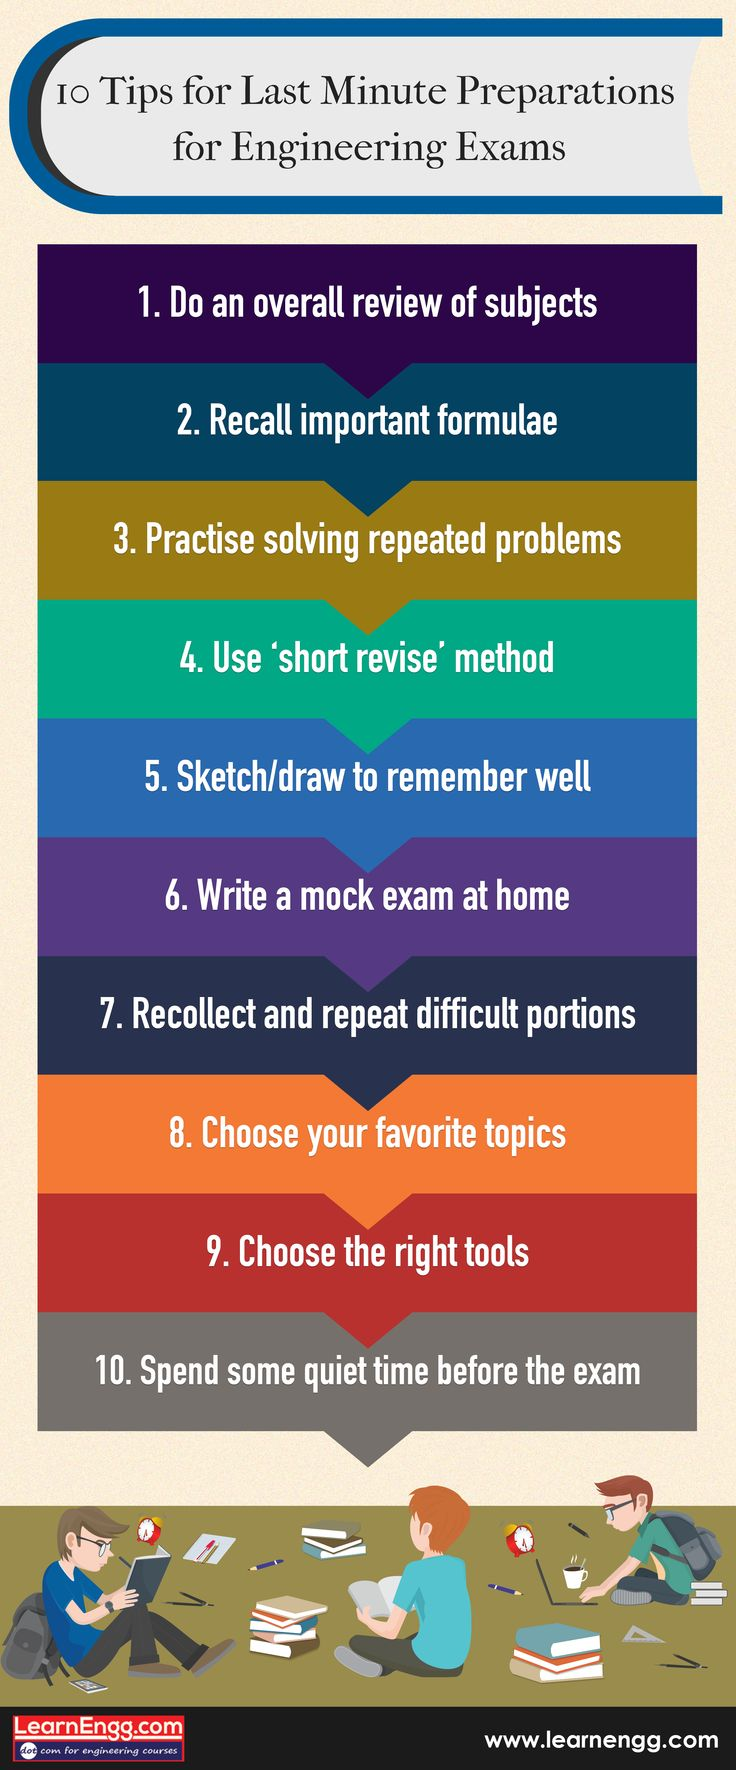 Tips For Last Minute Preparations For Engineering Exams. [Click on the image] #engineering #learnengg #exam